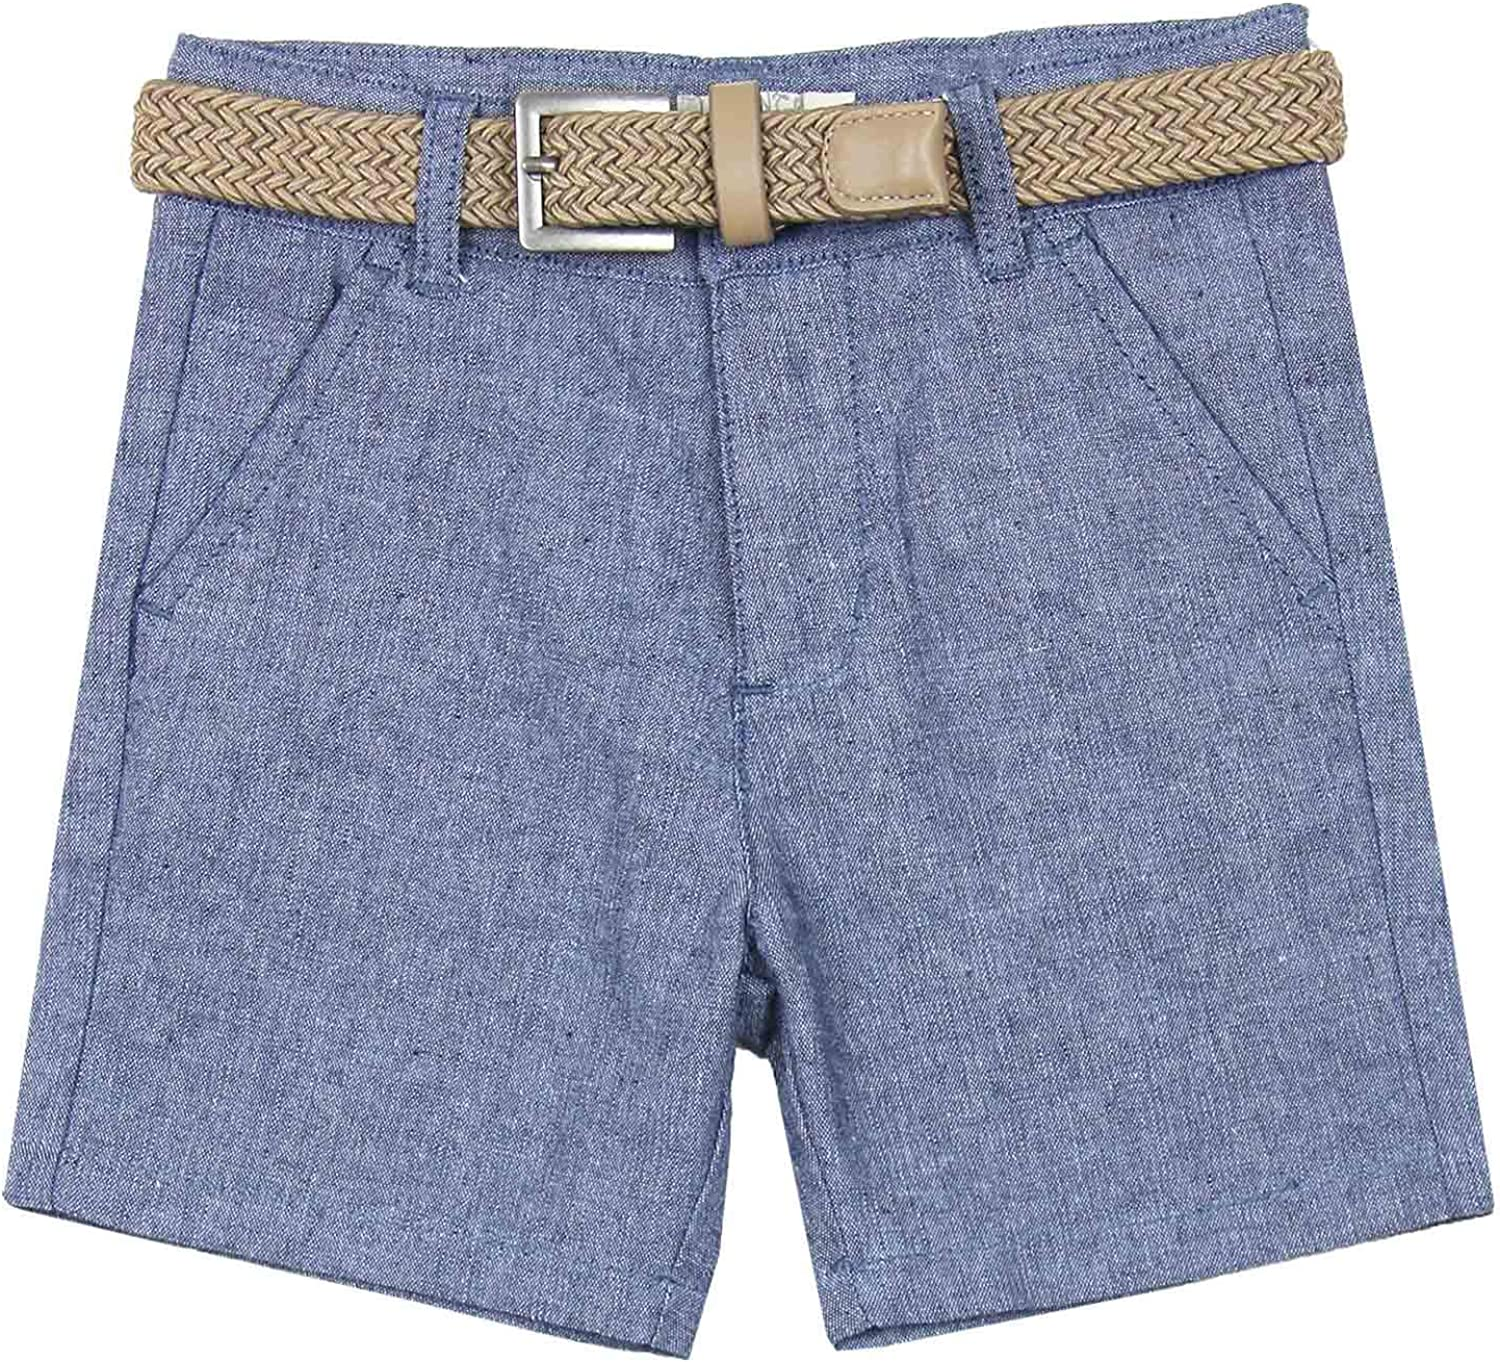 Losan Boys Linen Shorts with Belt Sizes 2-7